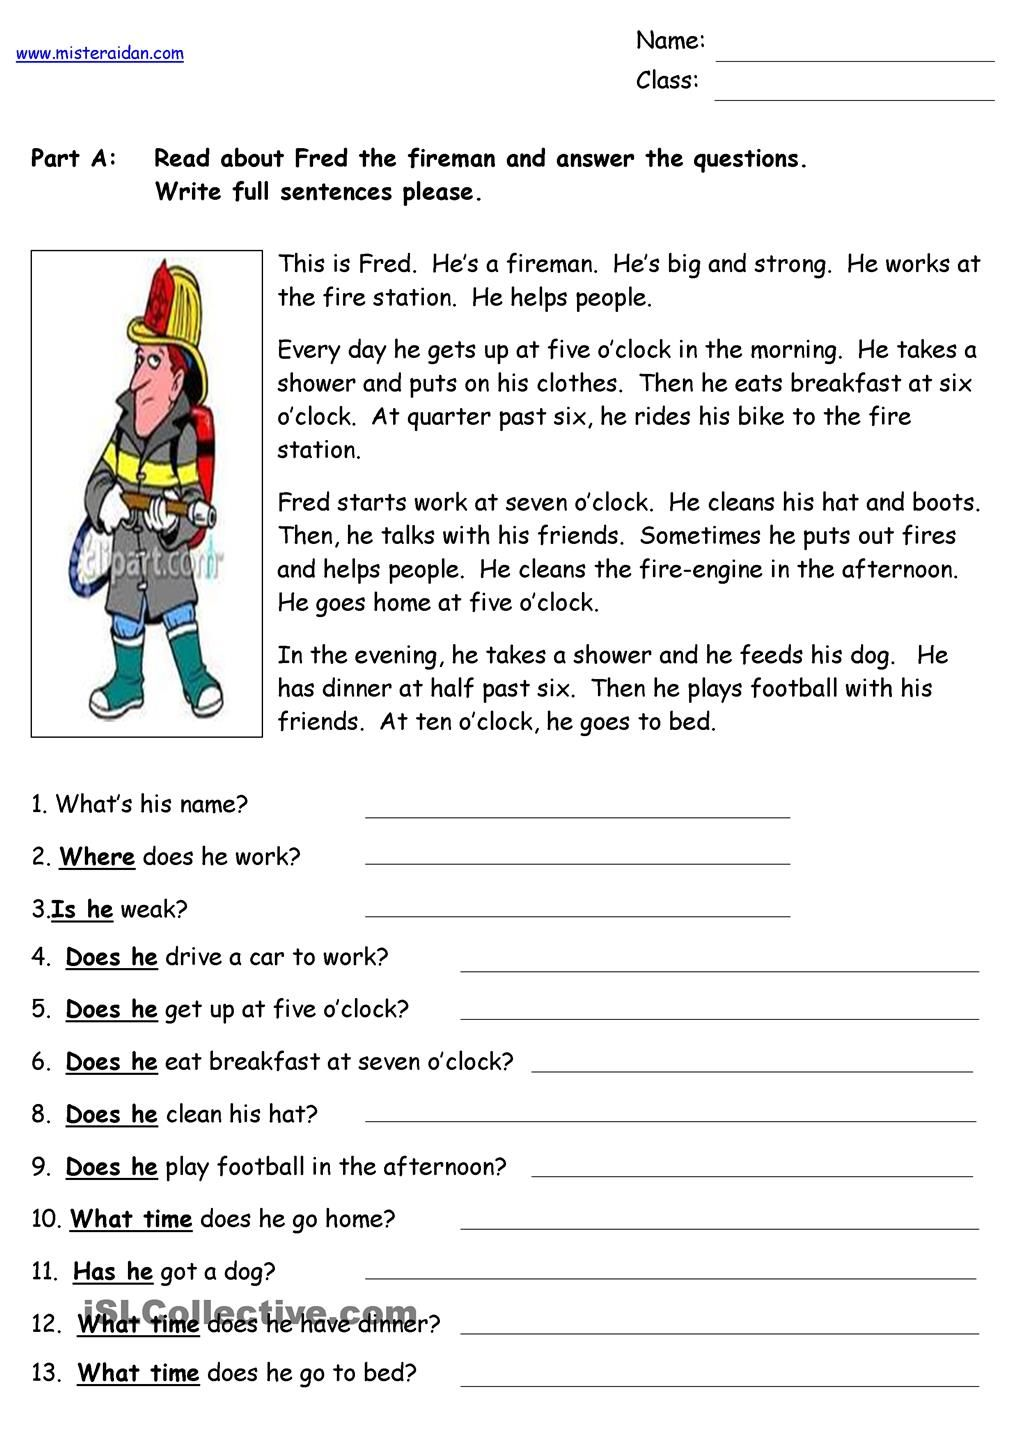 Worksheets Reading Comprehension Printable Worksheets fred the fireman reading comprehension school pinterest comprehension